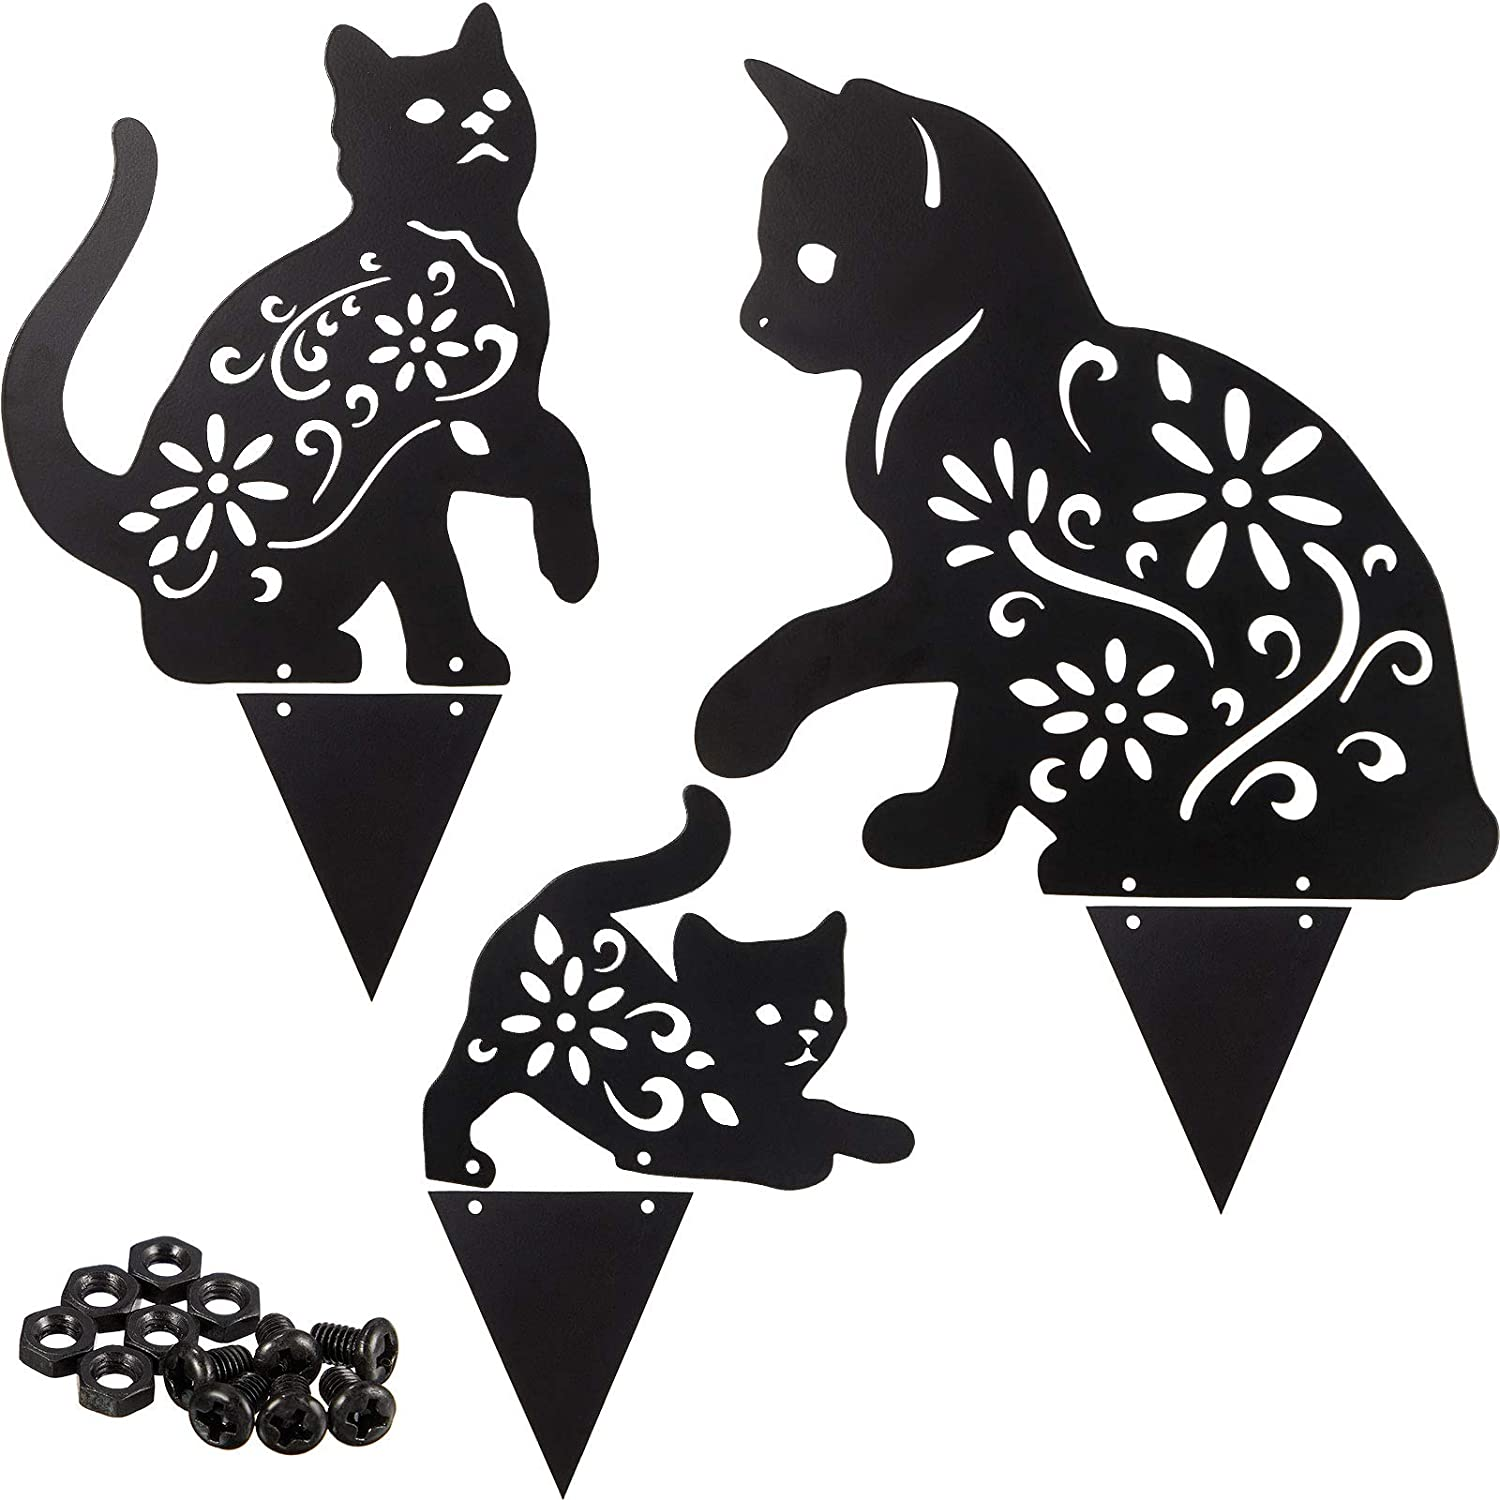 3 Pieces Cat Statue Stakes Black Cute Cat Garden Stake Metal Decorative Animal Statues Outdoor for Yard Garden Decor and Lawn Ornaments